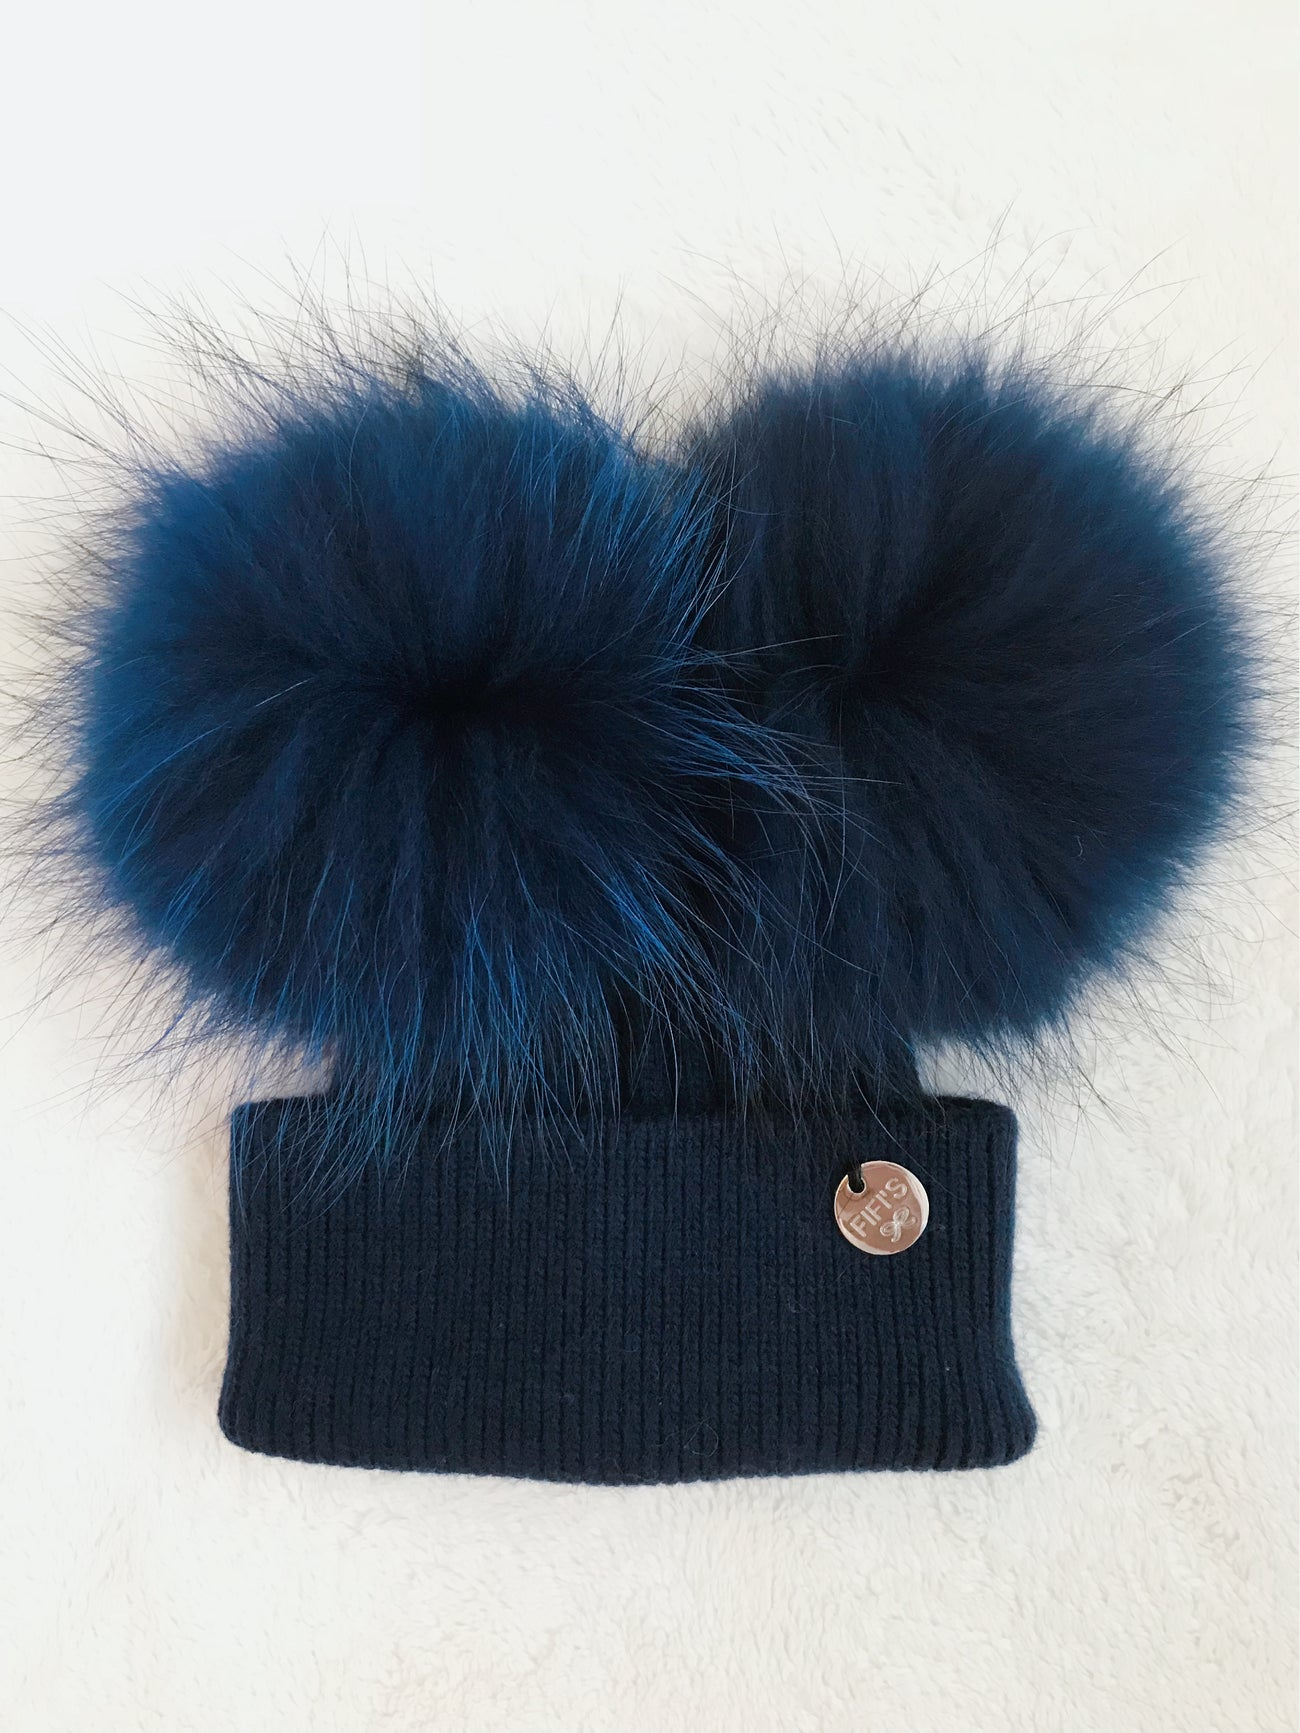 Baby Cashmere double -  Navy with matching pom